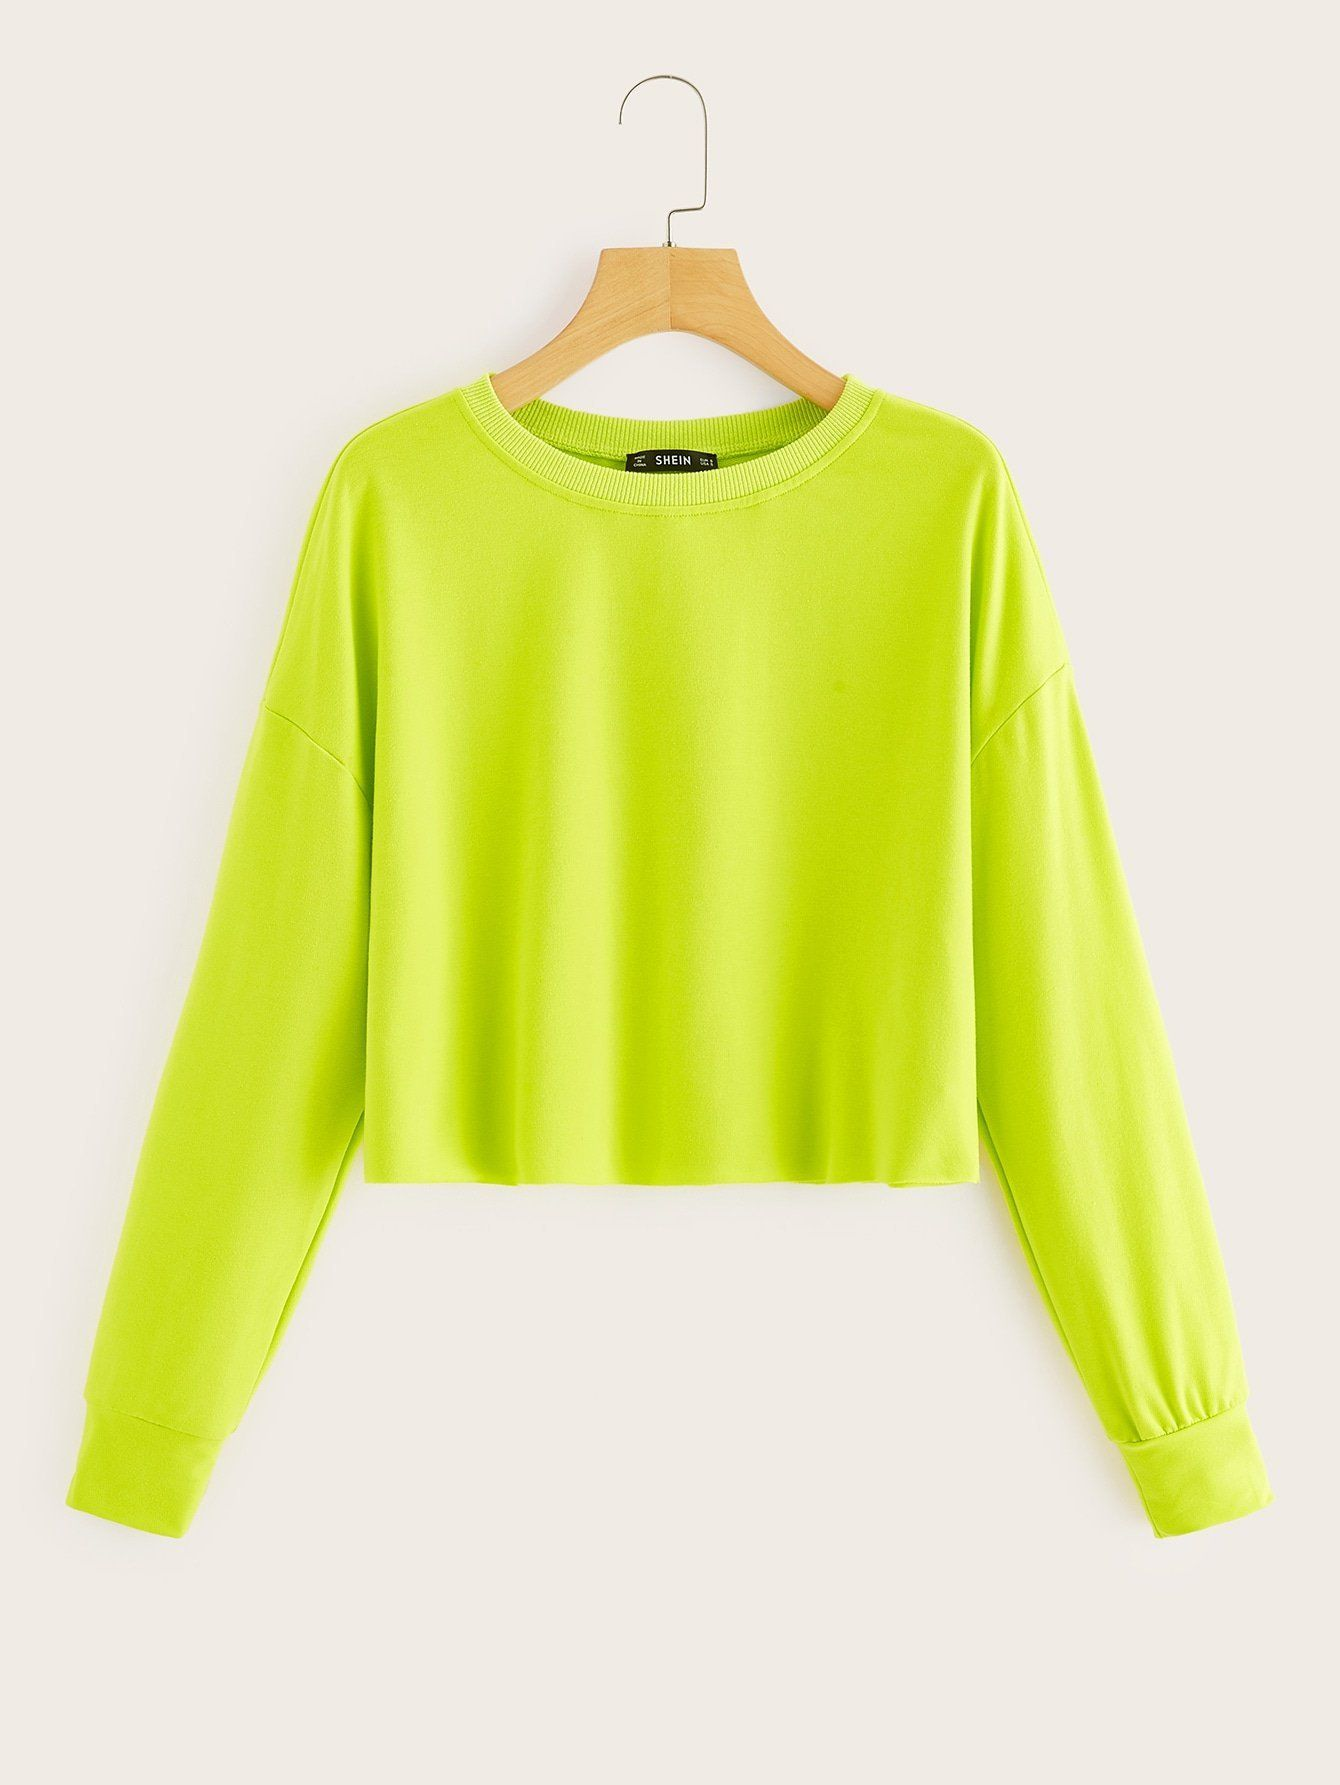 Cotton Crop Top  Loose Knit Neon Green Boat-neck Short Sweater  Other colours available